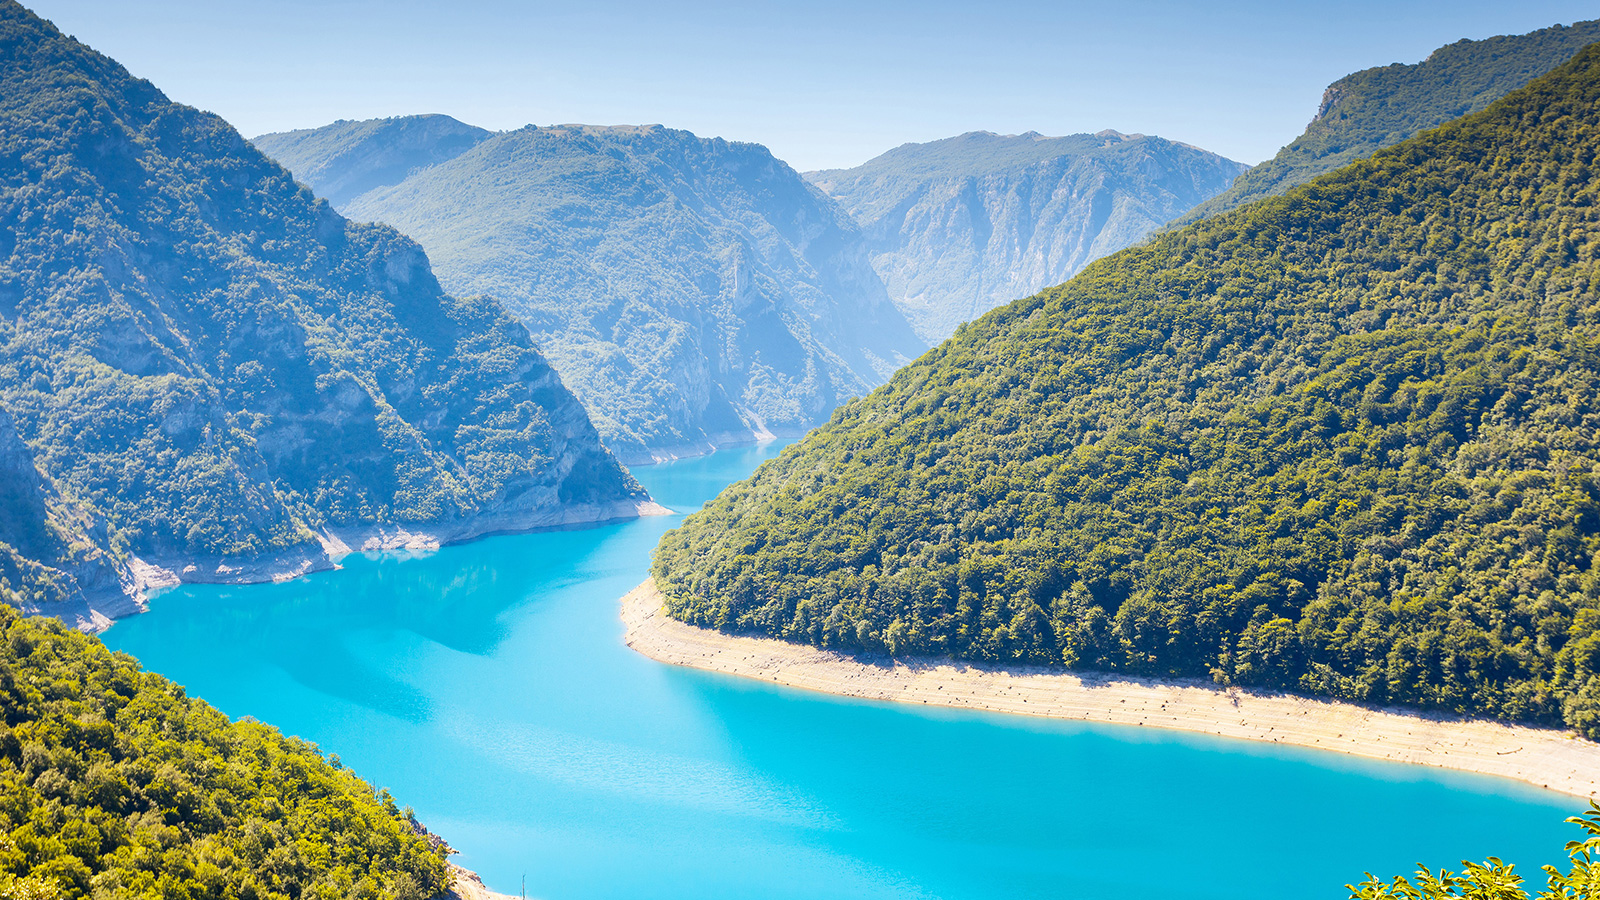 Piva Canyon in Porto Montenegro